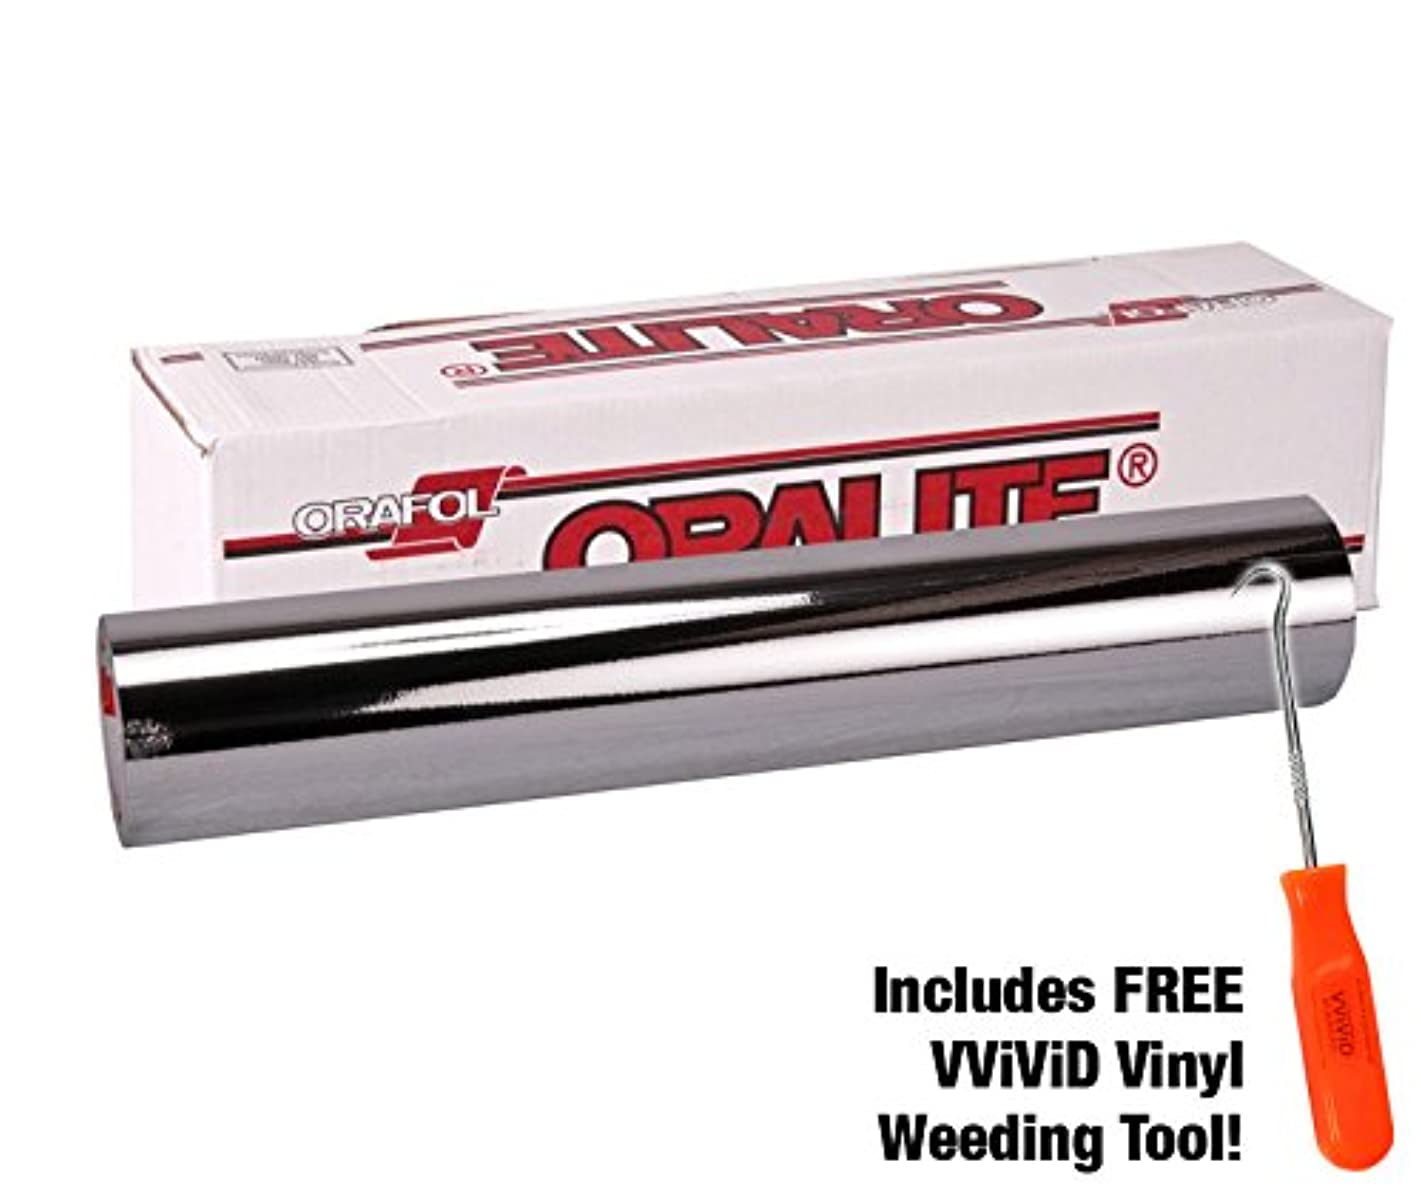 ORACAL 351 Silver Mirror Chrome Vinyl for Silhouette, Cameo & Cricut Including Stainless Steel Weeding Tool (30ft x 12